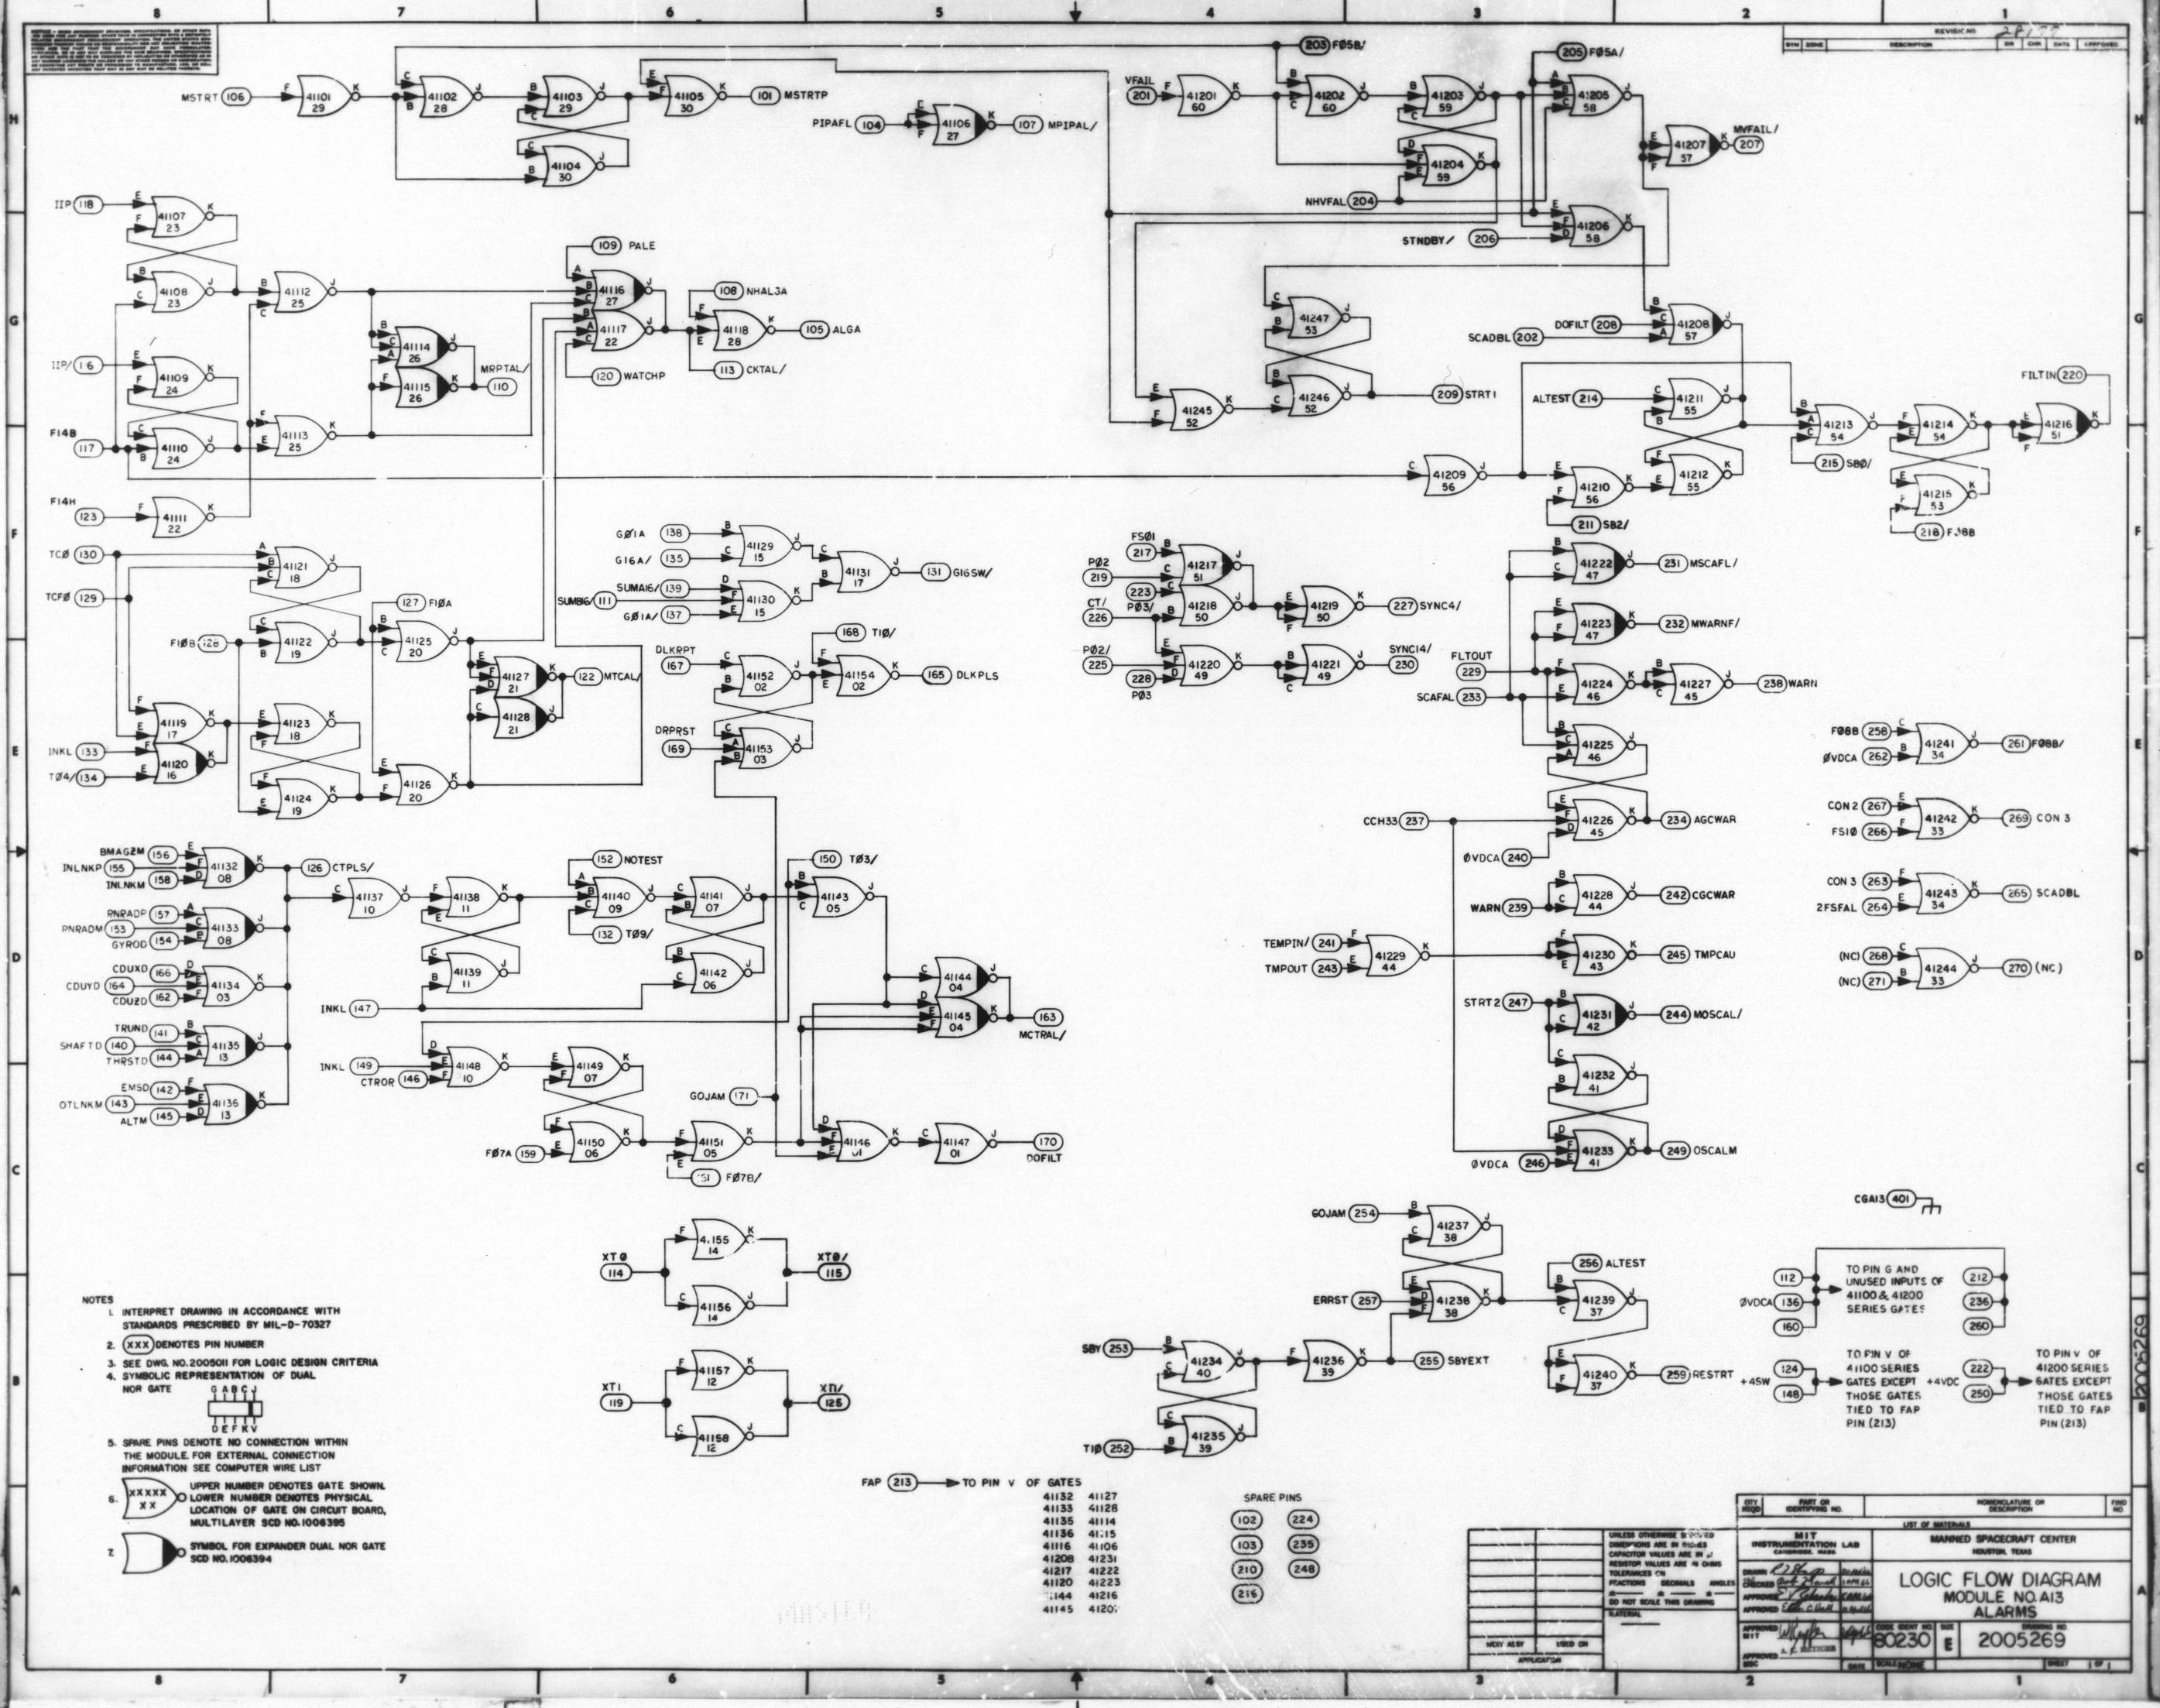 Virtual Agc Electrical Mechanical Page J 380 Circuit Board Wiring Diagram Click To Enlarge